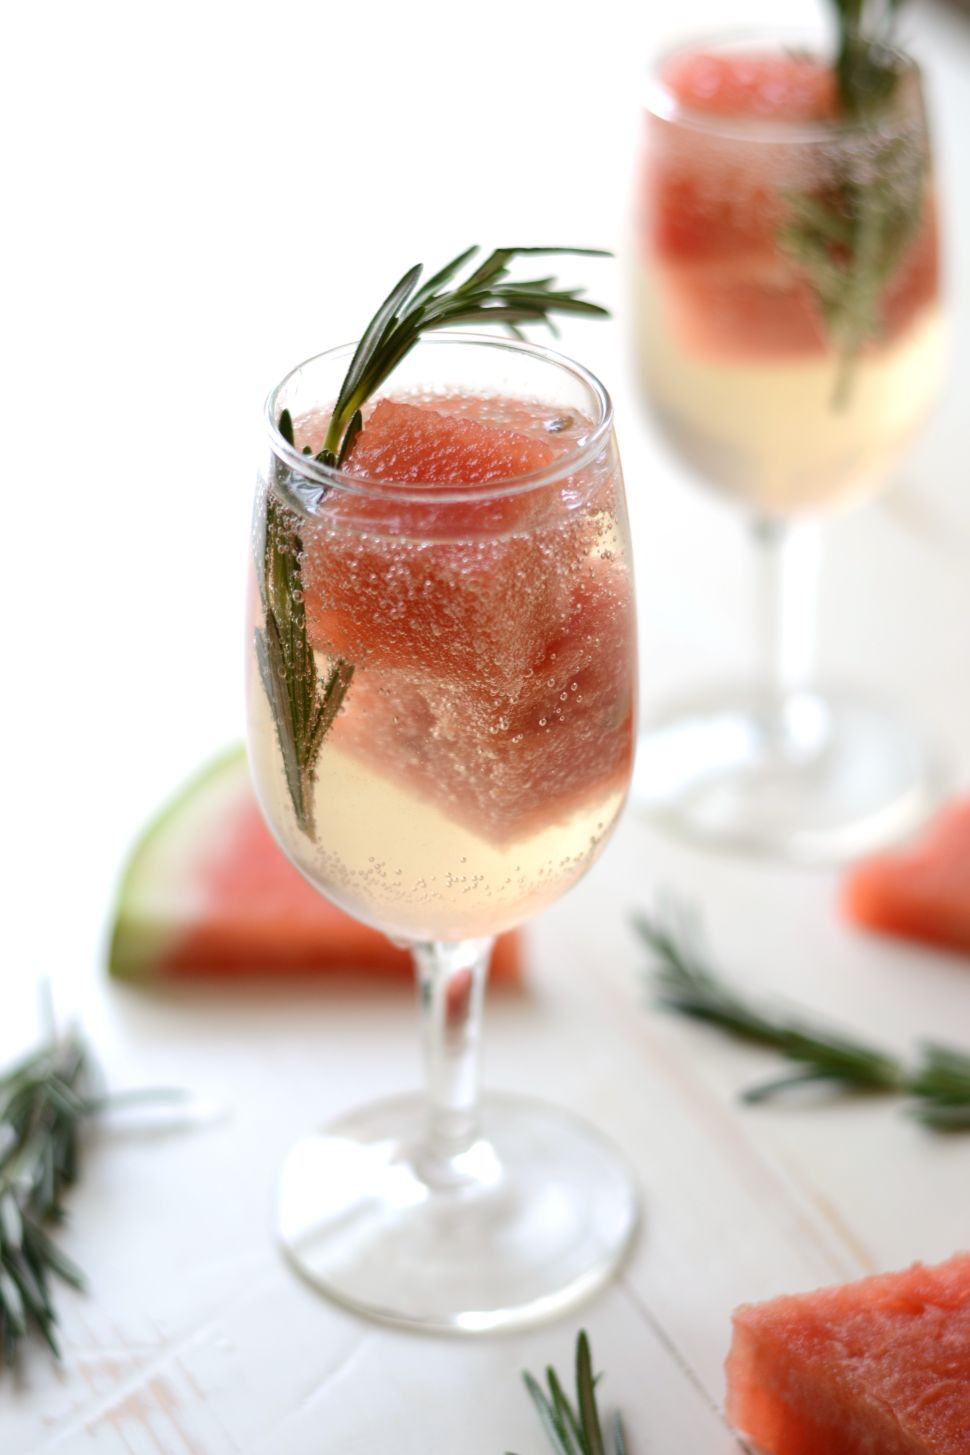 Watermelon Cocktails to Die for in This Summer Heat